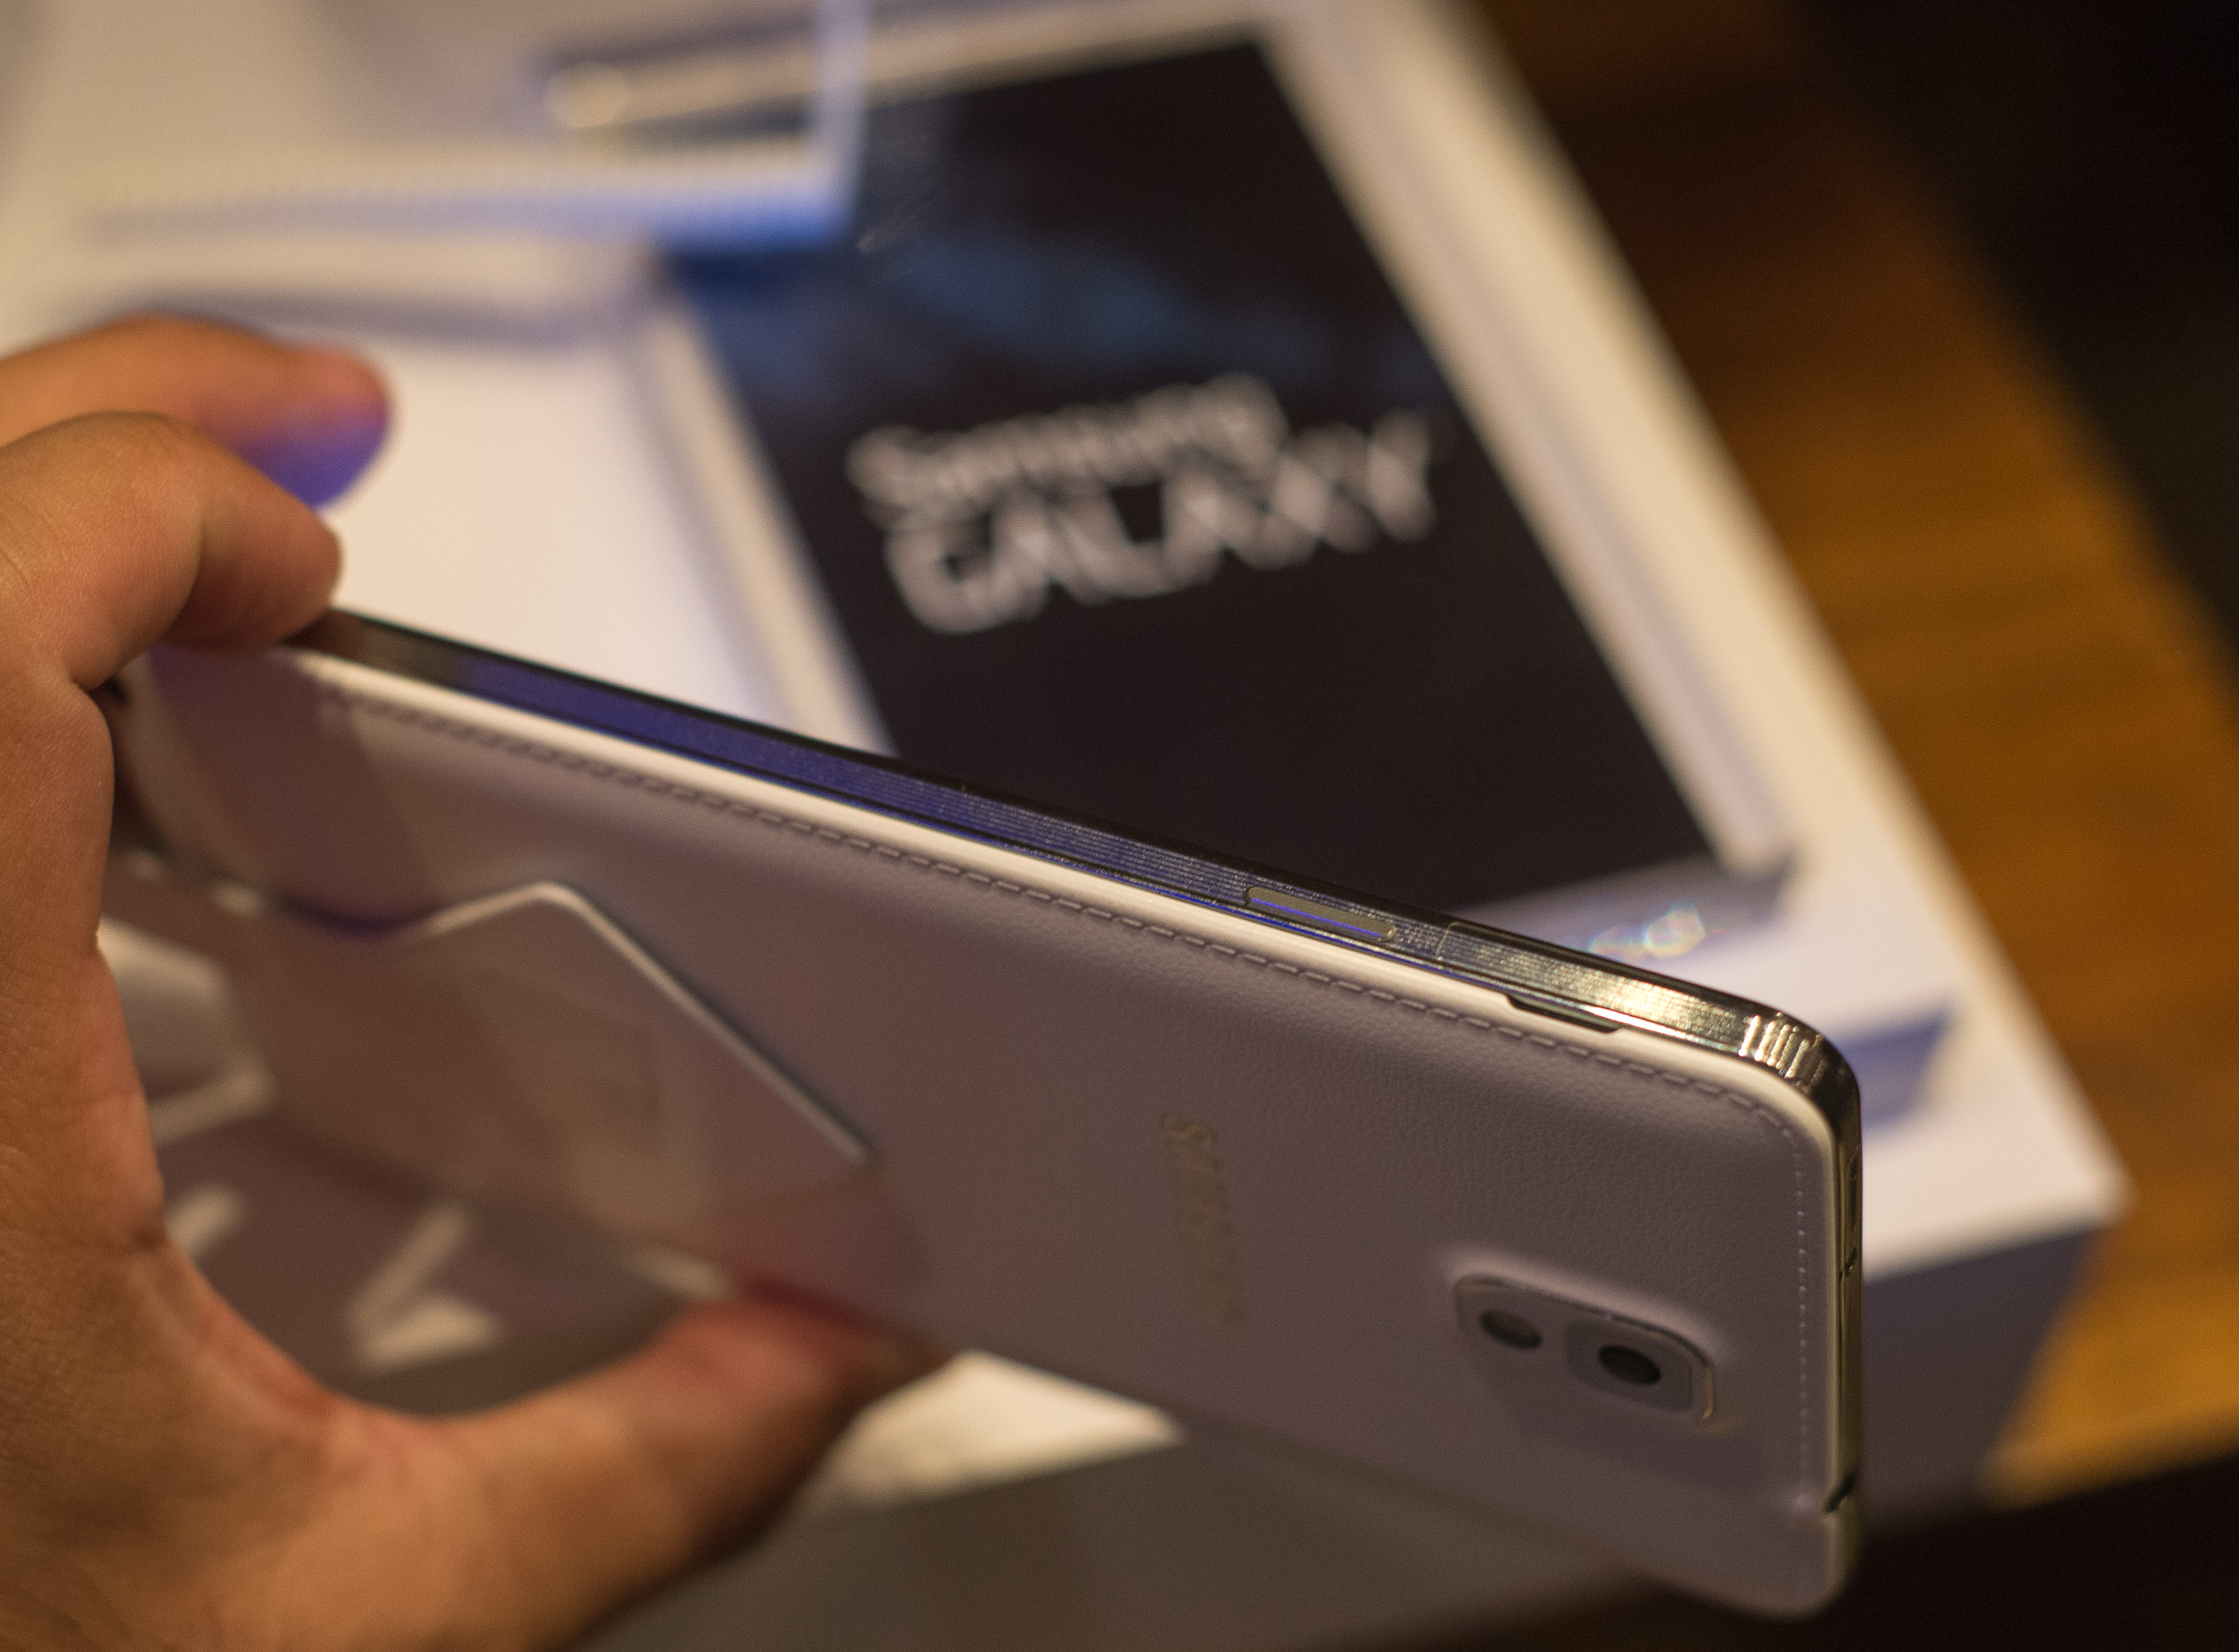 How to use scrapbook on galaxy note 3 - The Combination Of The Two Definitely Help Make The Note 3 Feel Less Of A Slippery Mess But Those Hoping For A Truly Premium Feel Will Probably Continue To